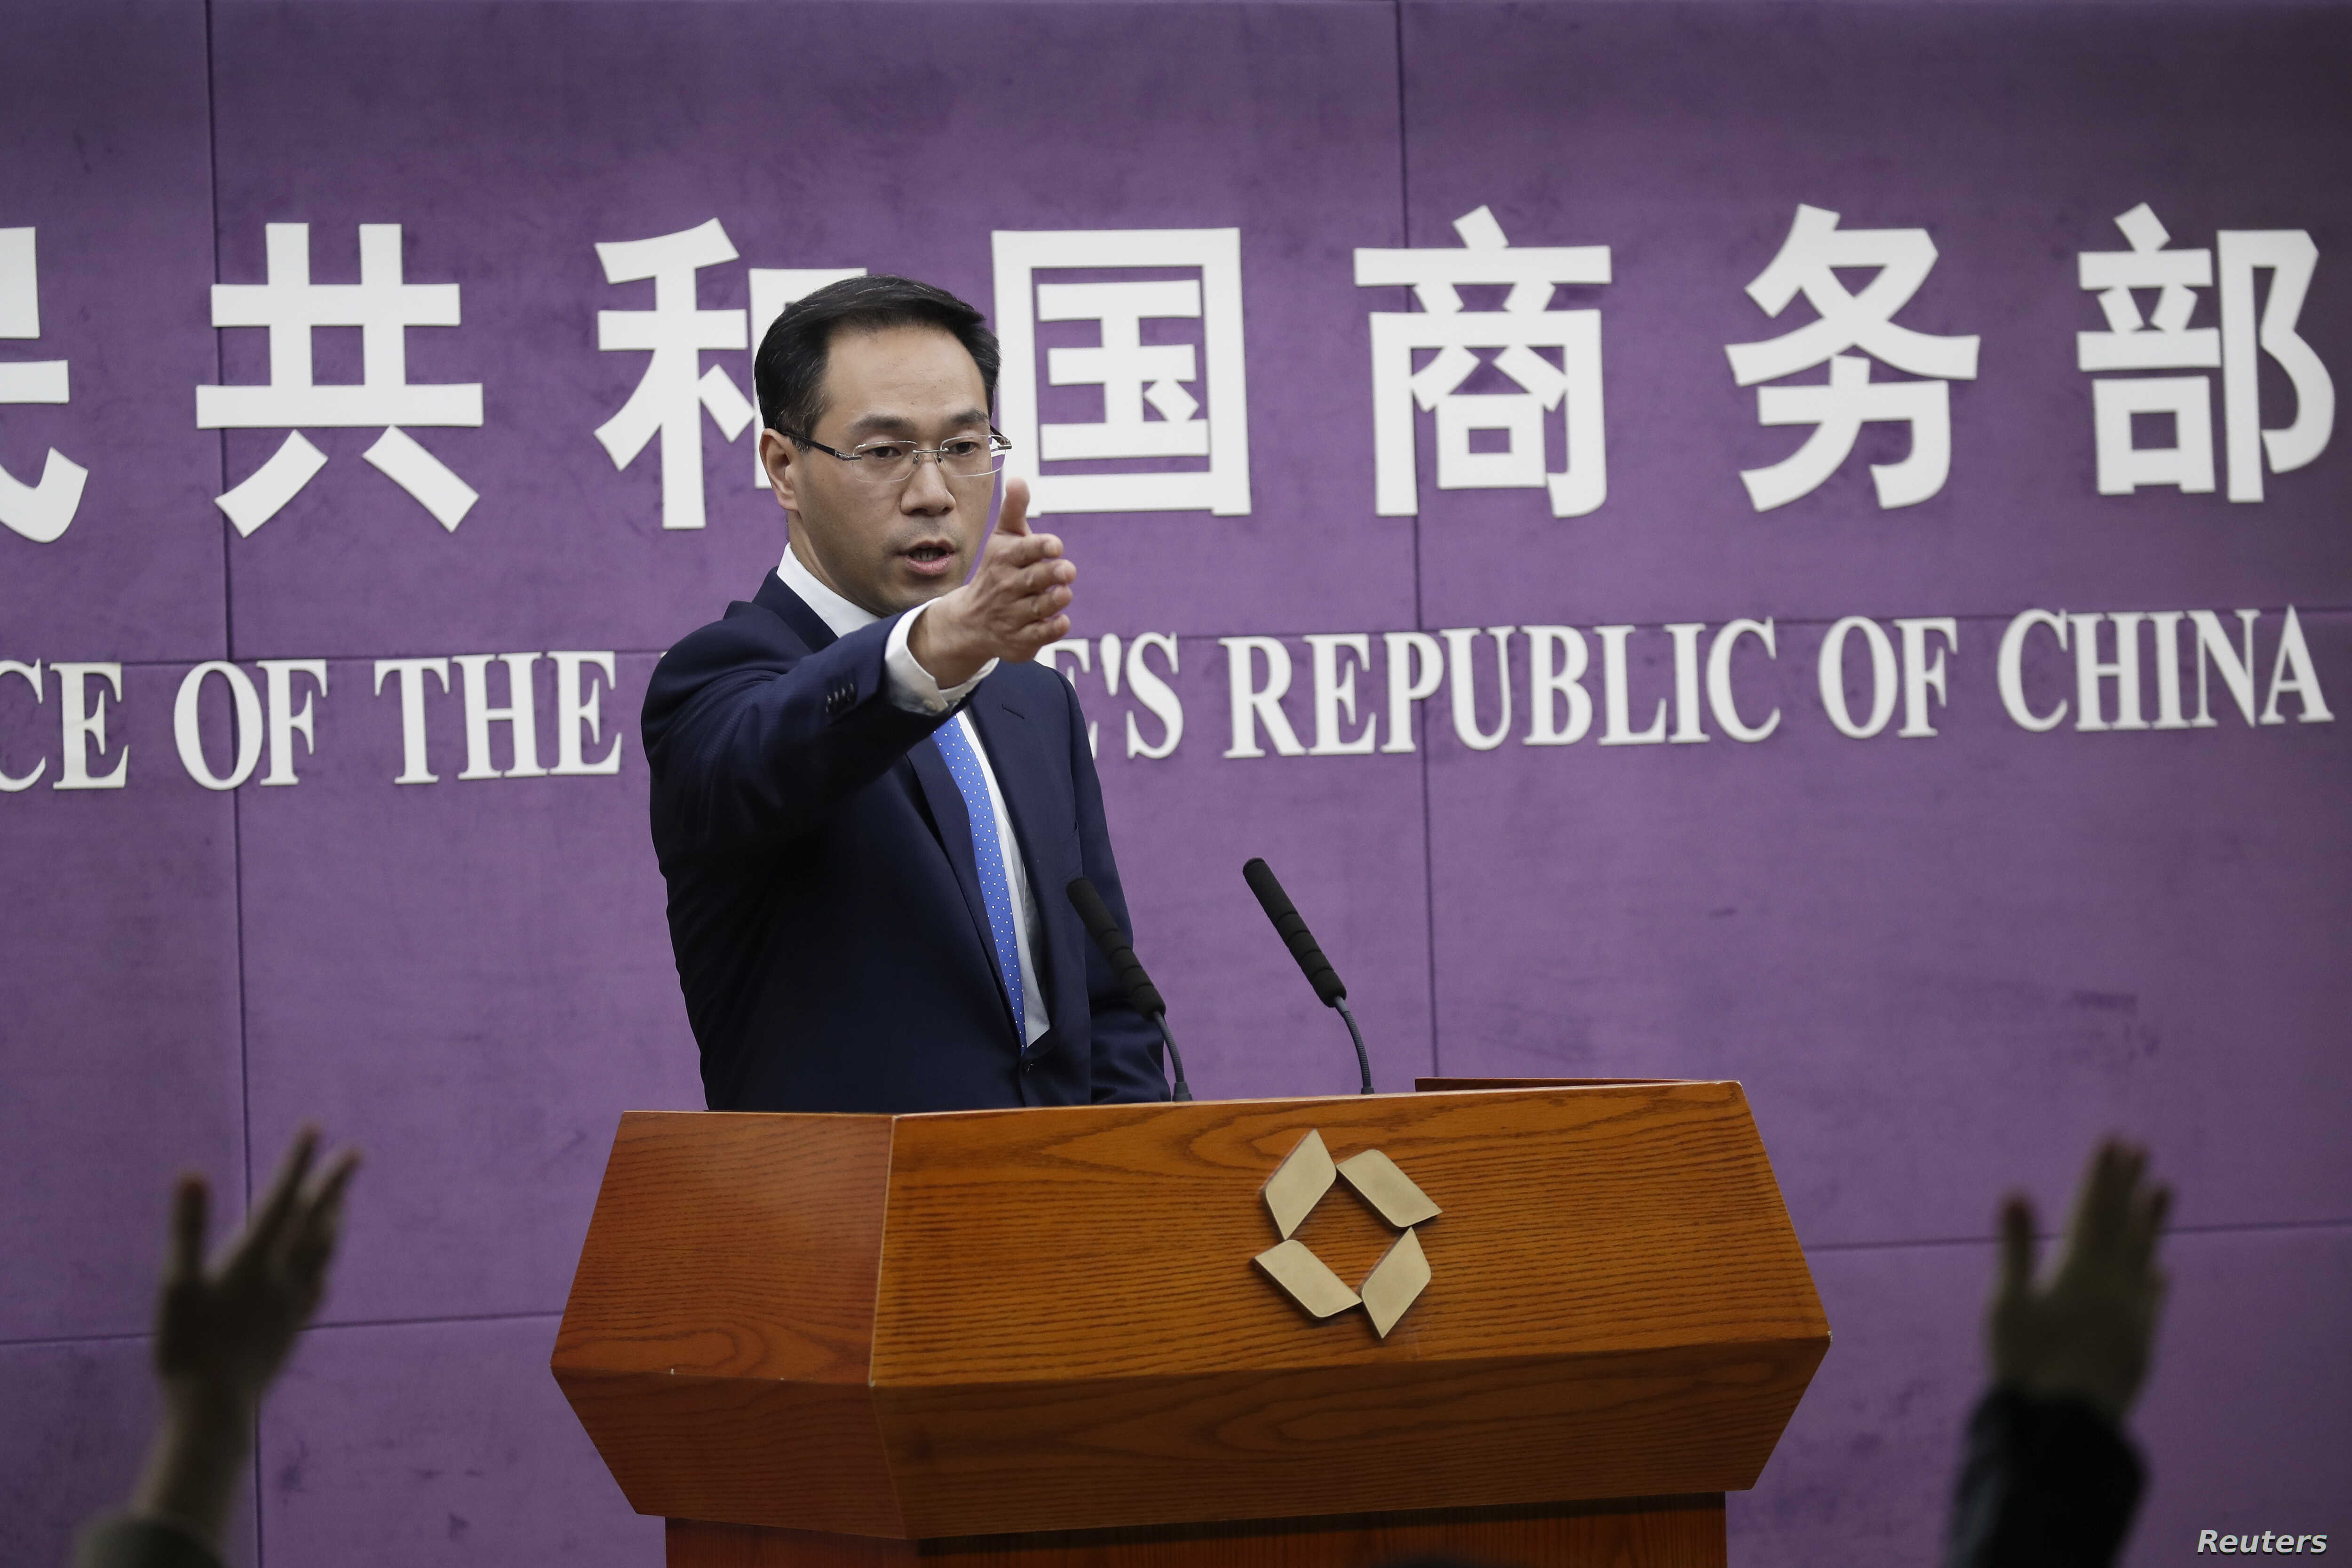 Chinese Ministry of Commerce spokesman Gao Feng gestures as journalists raise hands for questions during a press conference at the Ministry of Commerce in Beijing, April 6, 2018.